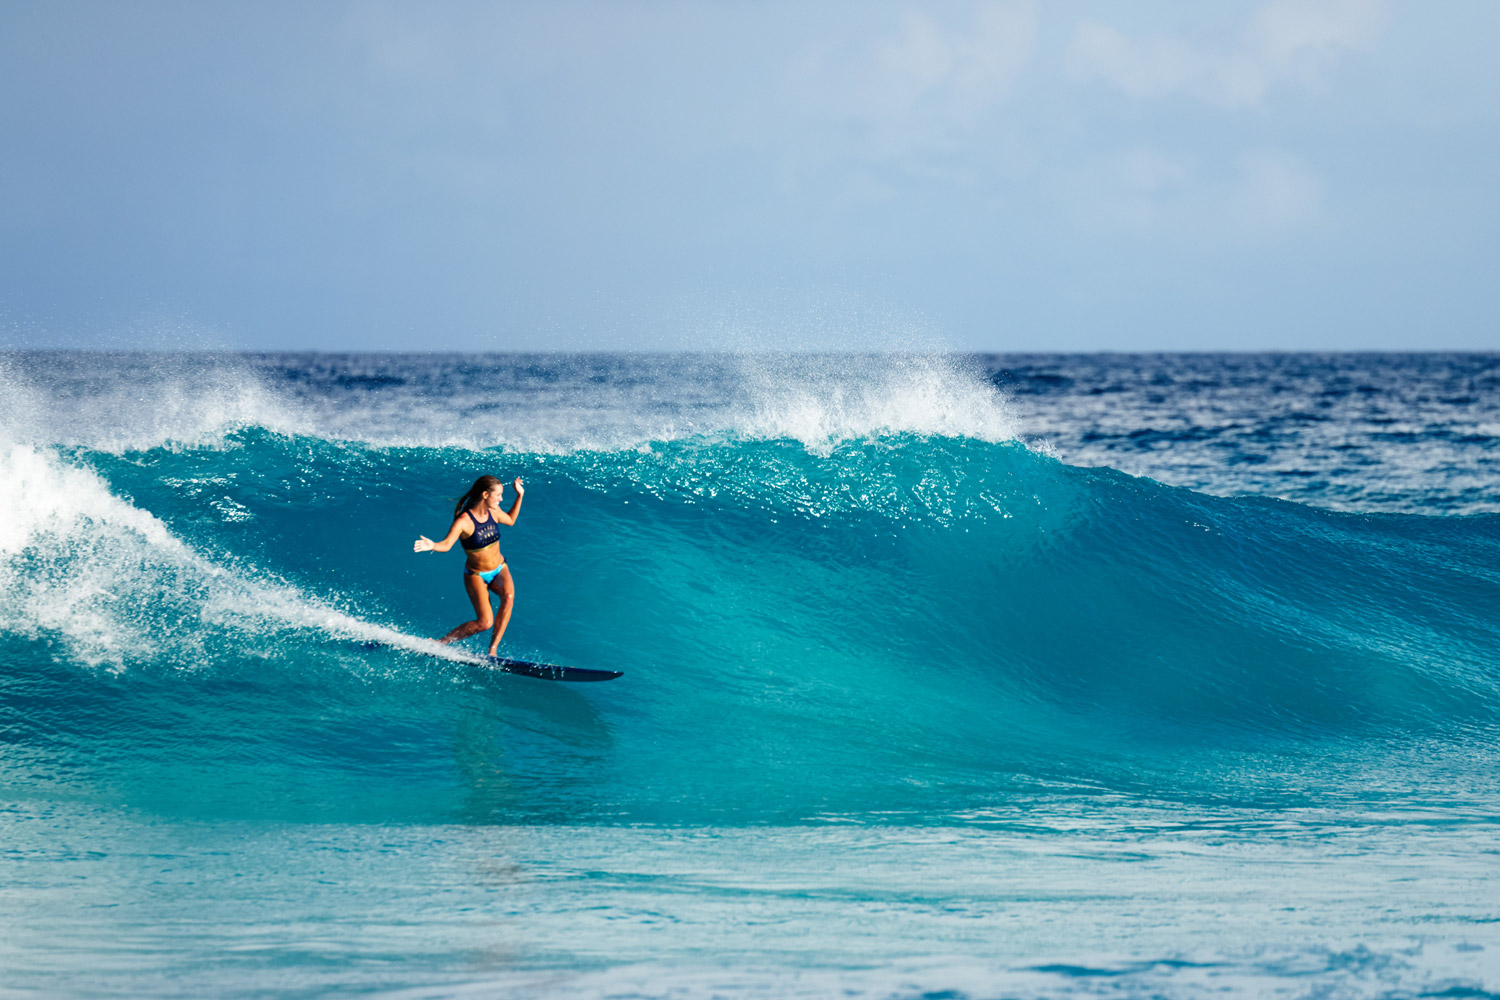 Dive into the Latest #POPsurf Collection